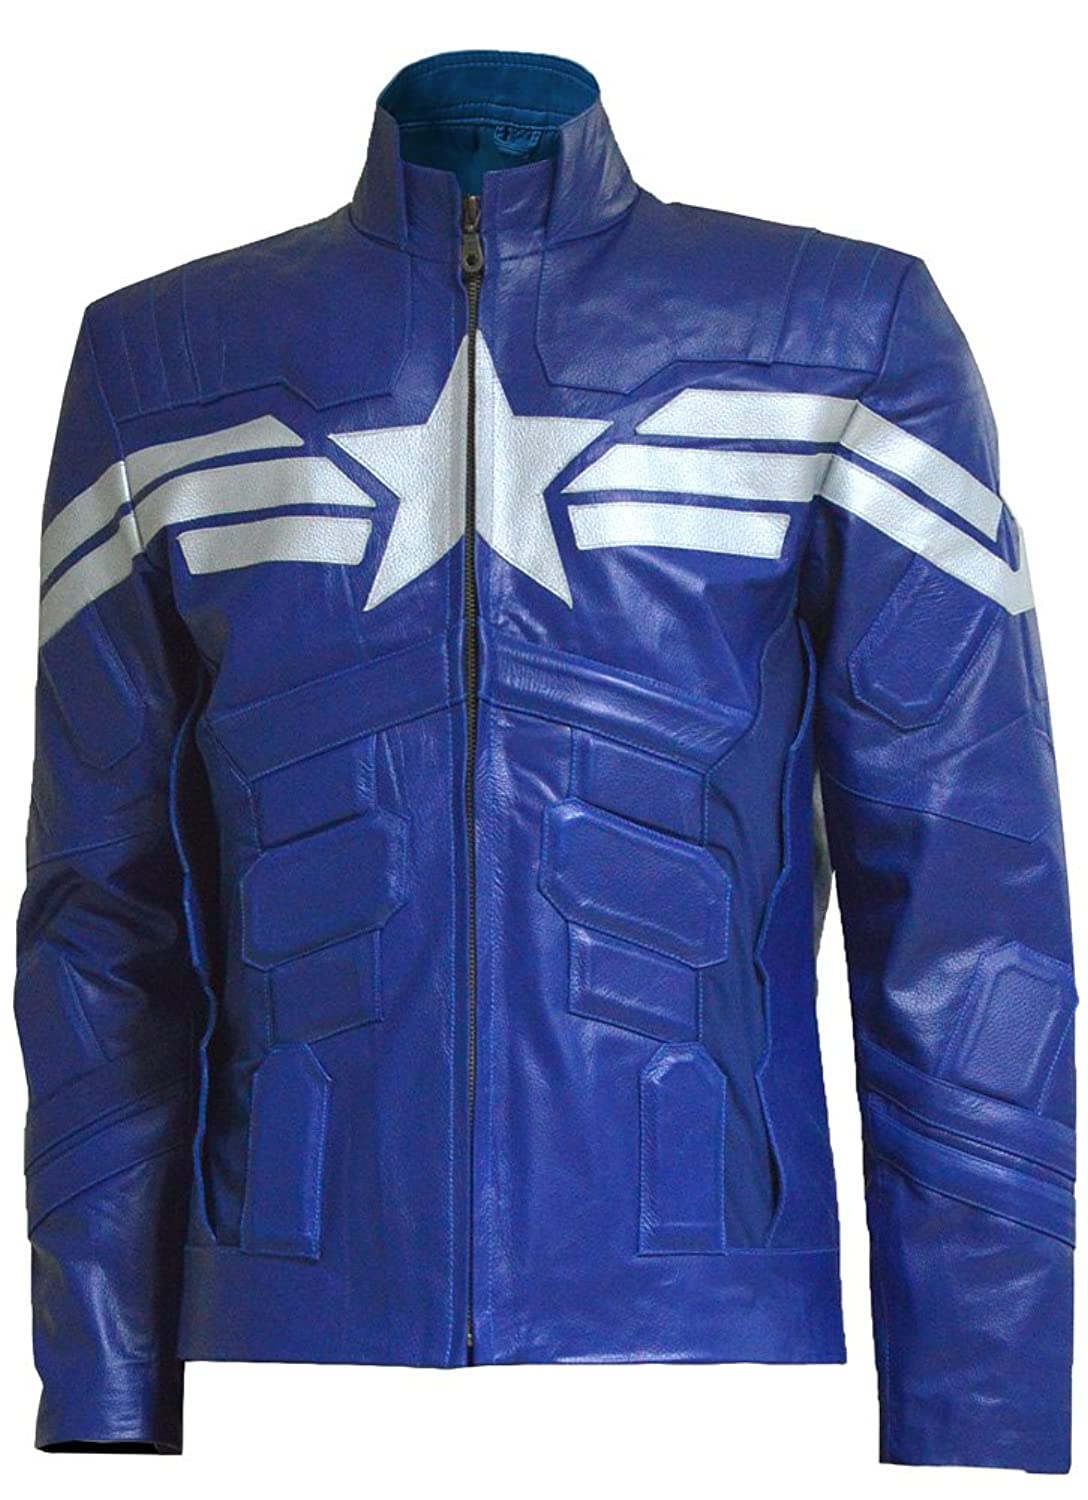 Captain America Winter Soldier Blue Genuine Leather Jacket Replica - DeluxeAdultCostumes.com